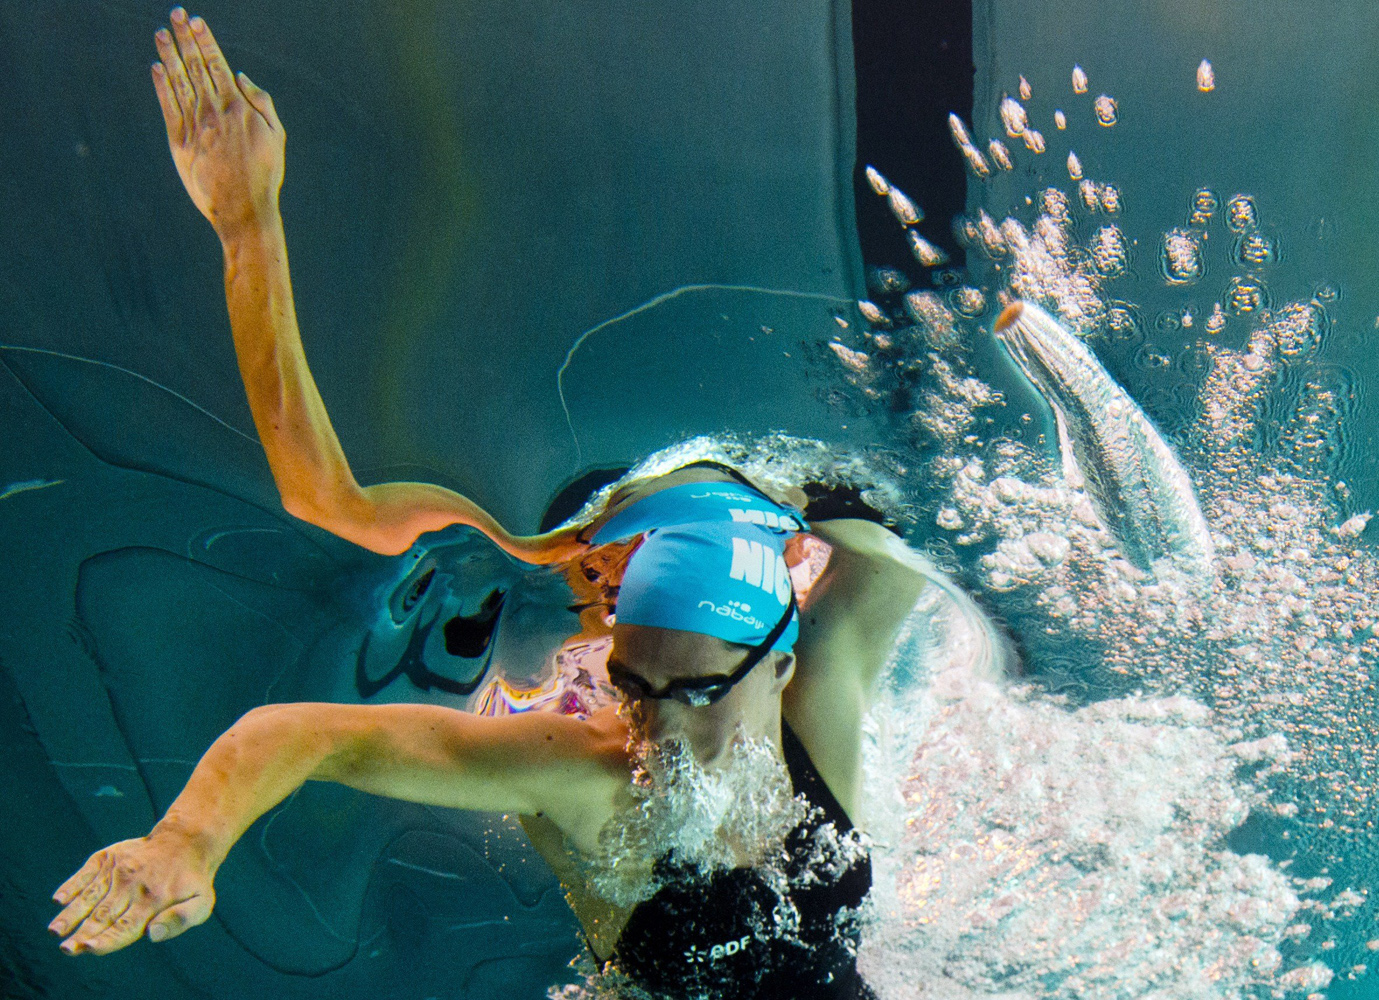 Apr. 10, 2014. France's Camille Muffat on her way to win the women's 100m freestyle final during  the French Swimming championships in Chartres.